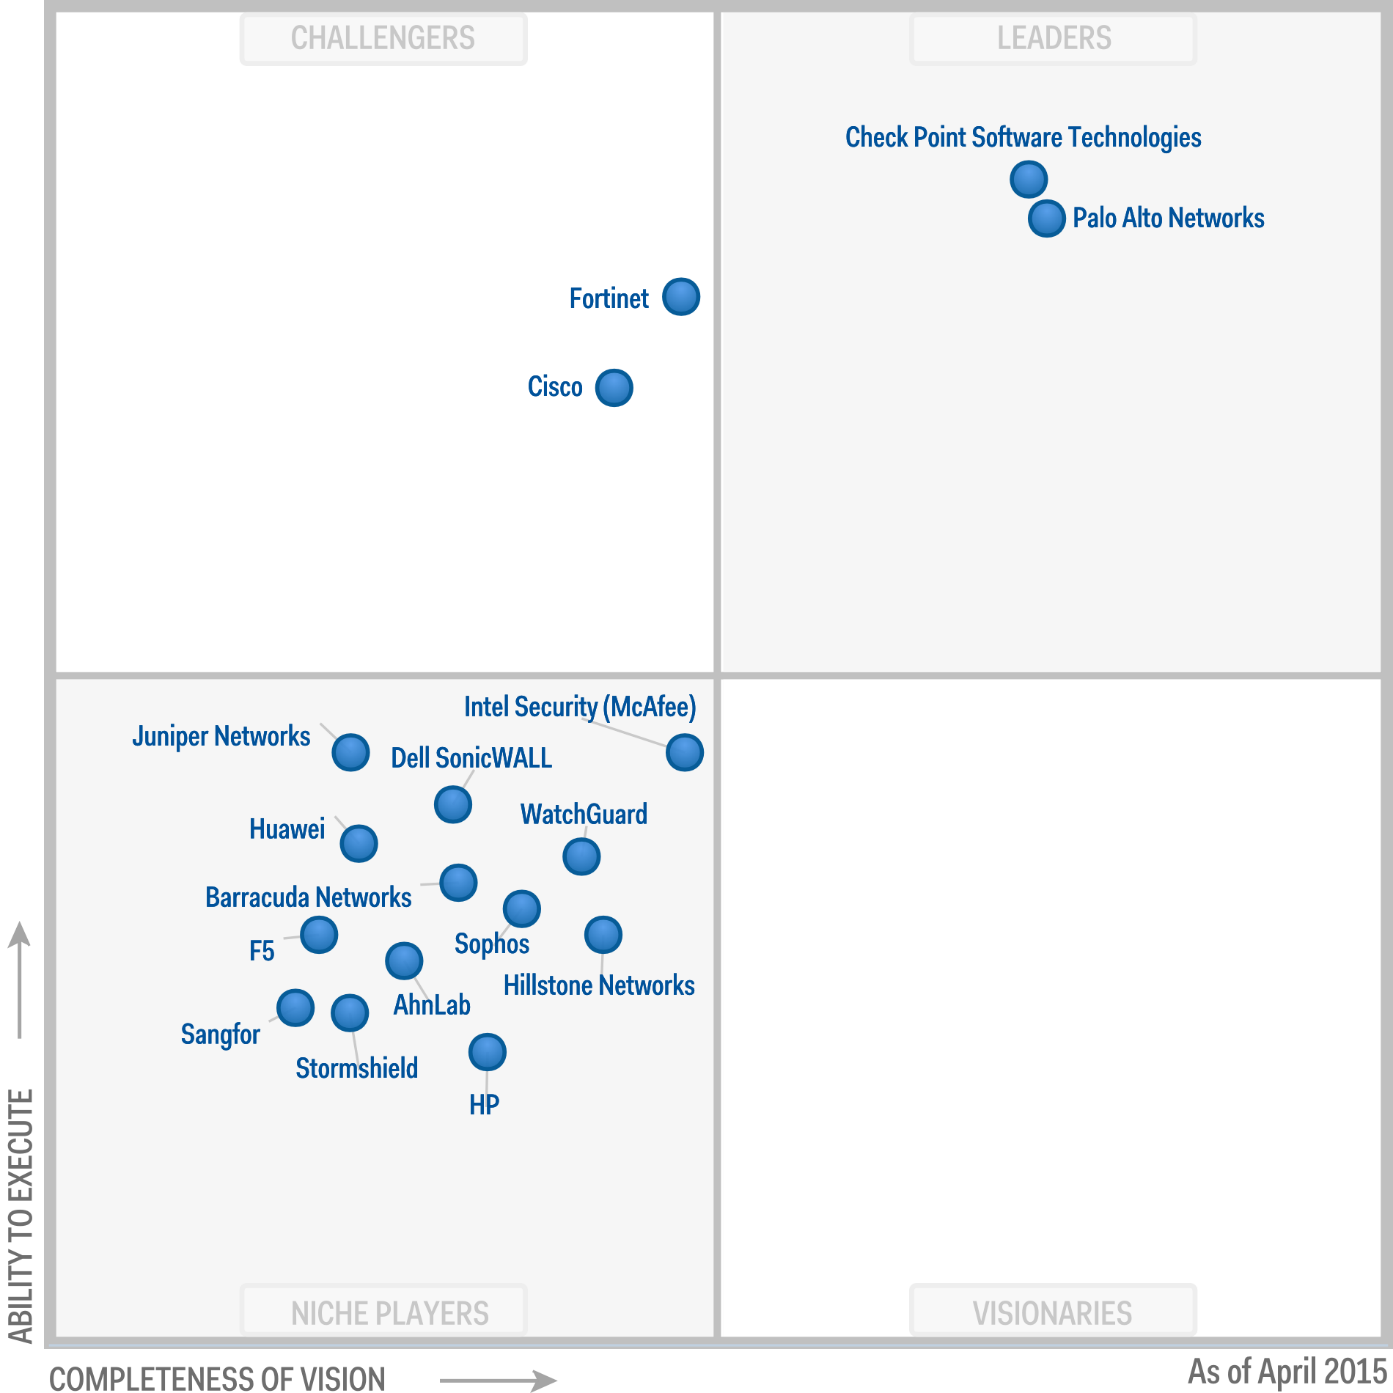 Magic Quadrant for (Enterprise) Network Firewalls 2015 (G00263955)